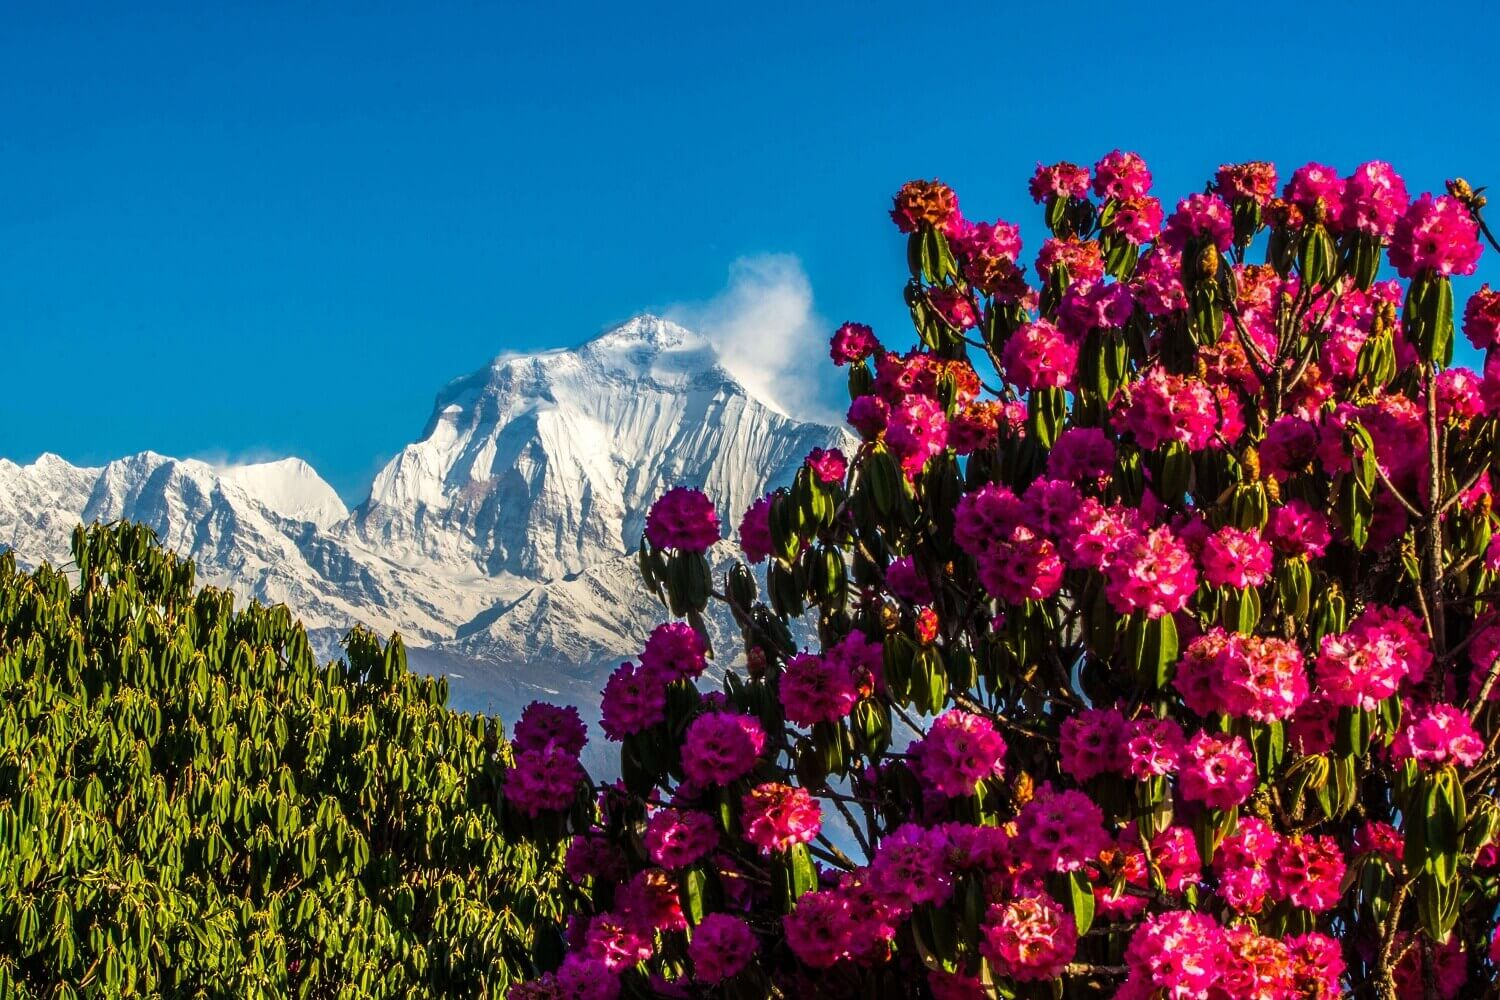 Beautiful Dhaulagiri Mountain in the Backdrop and Rhododendron Flowers